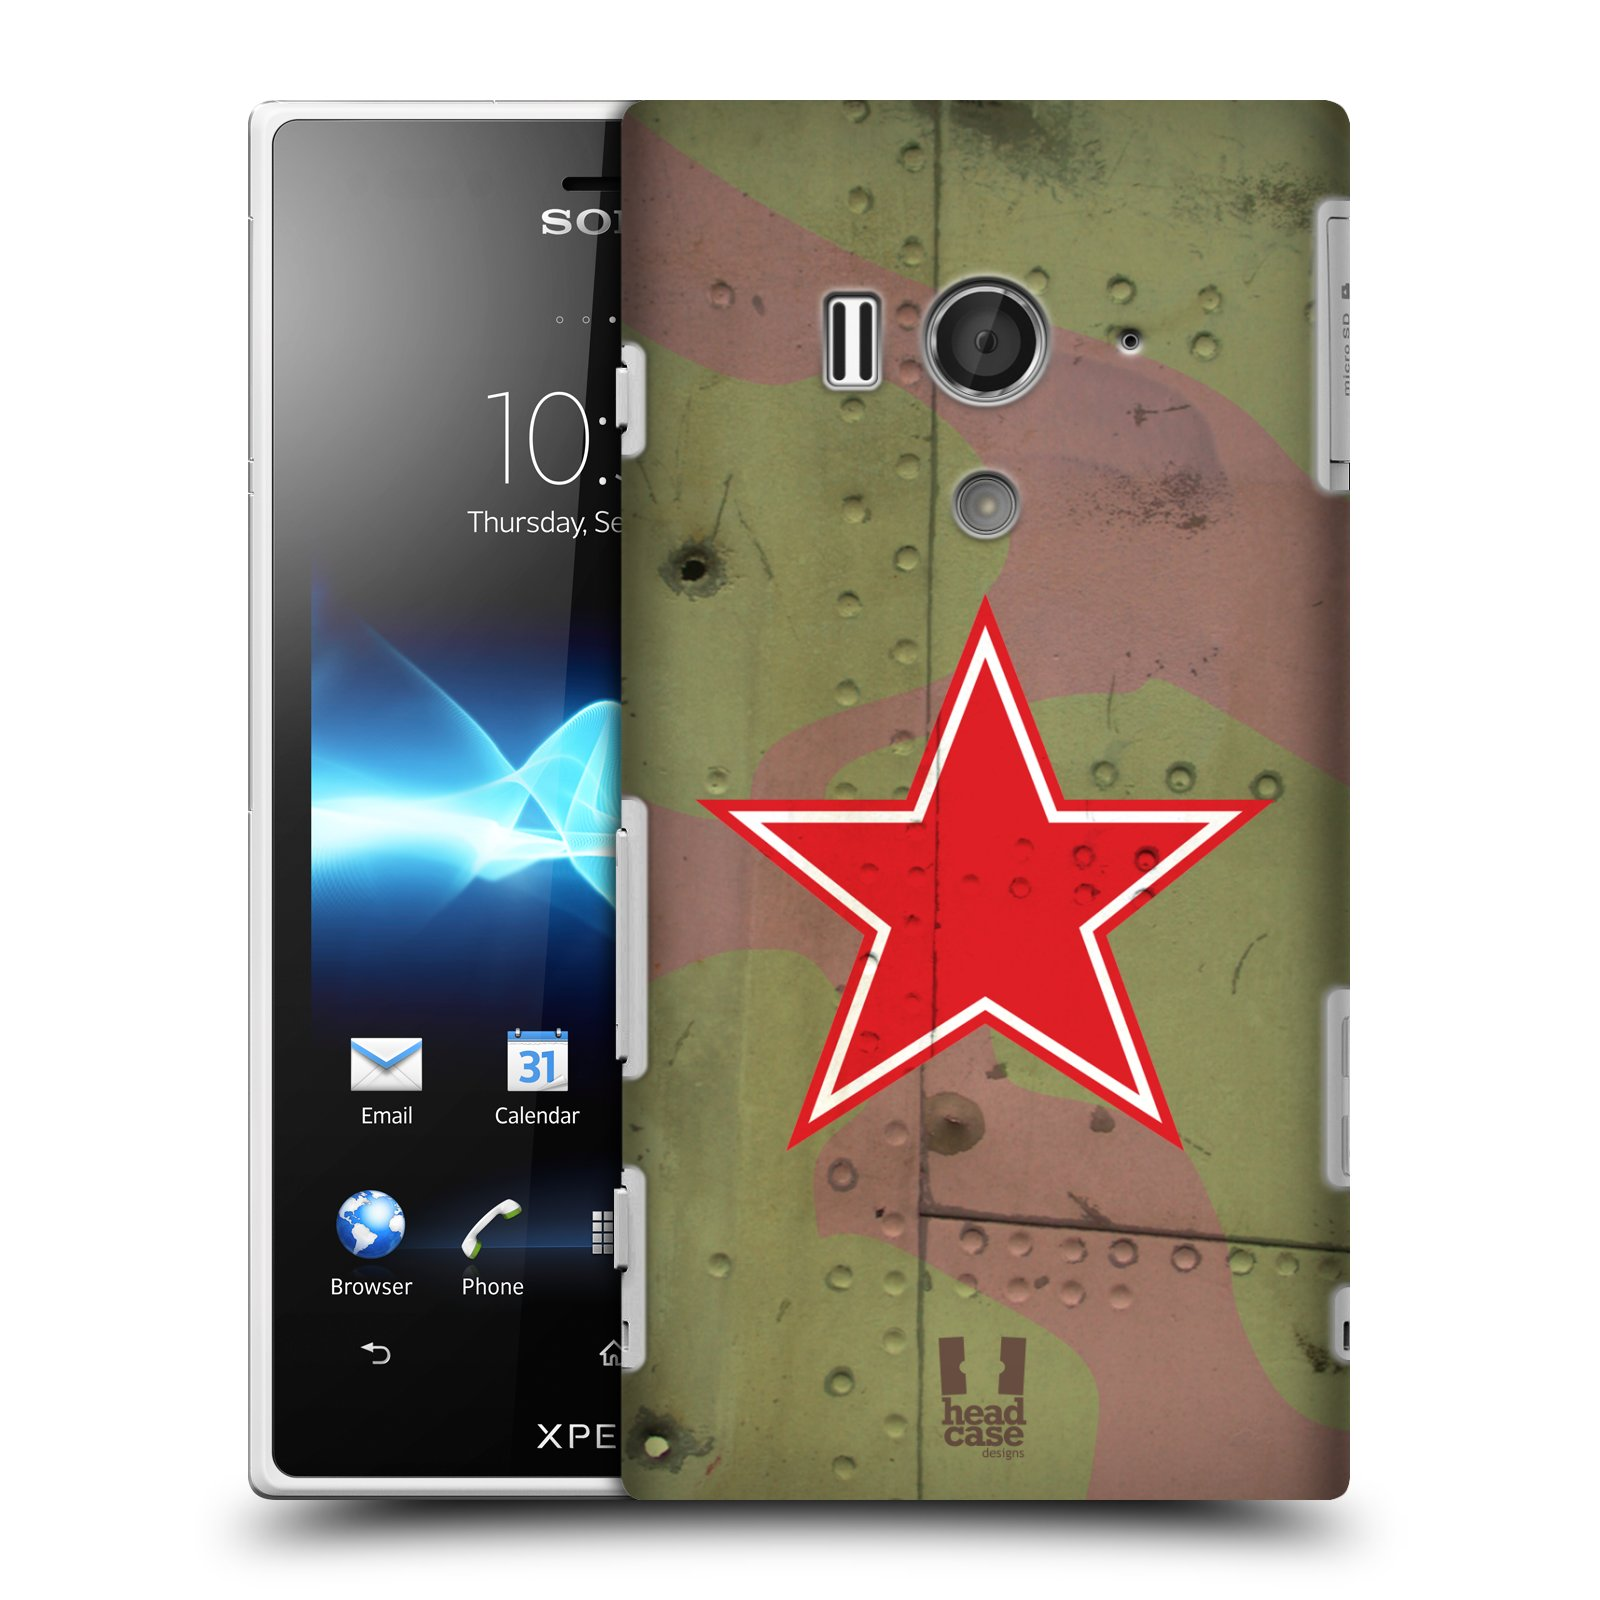 HEAD CASE DESIGNS NATION MARKINGS CASE COVER FOR SONY XPERIA ACRO S LT26W